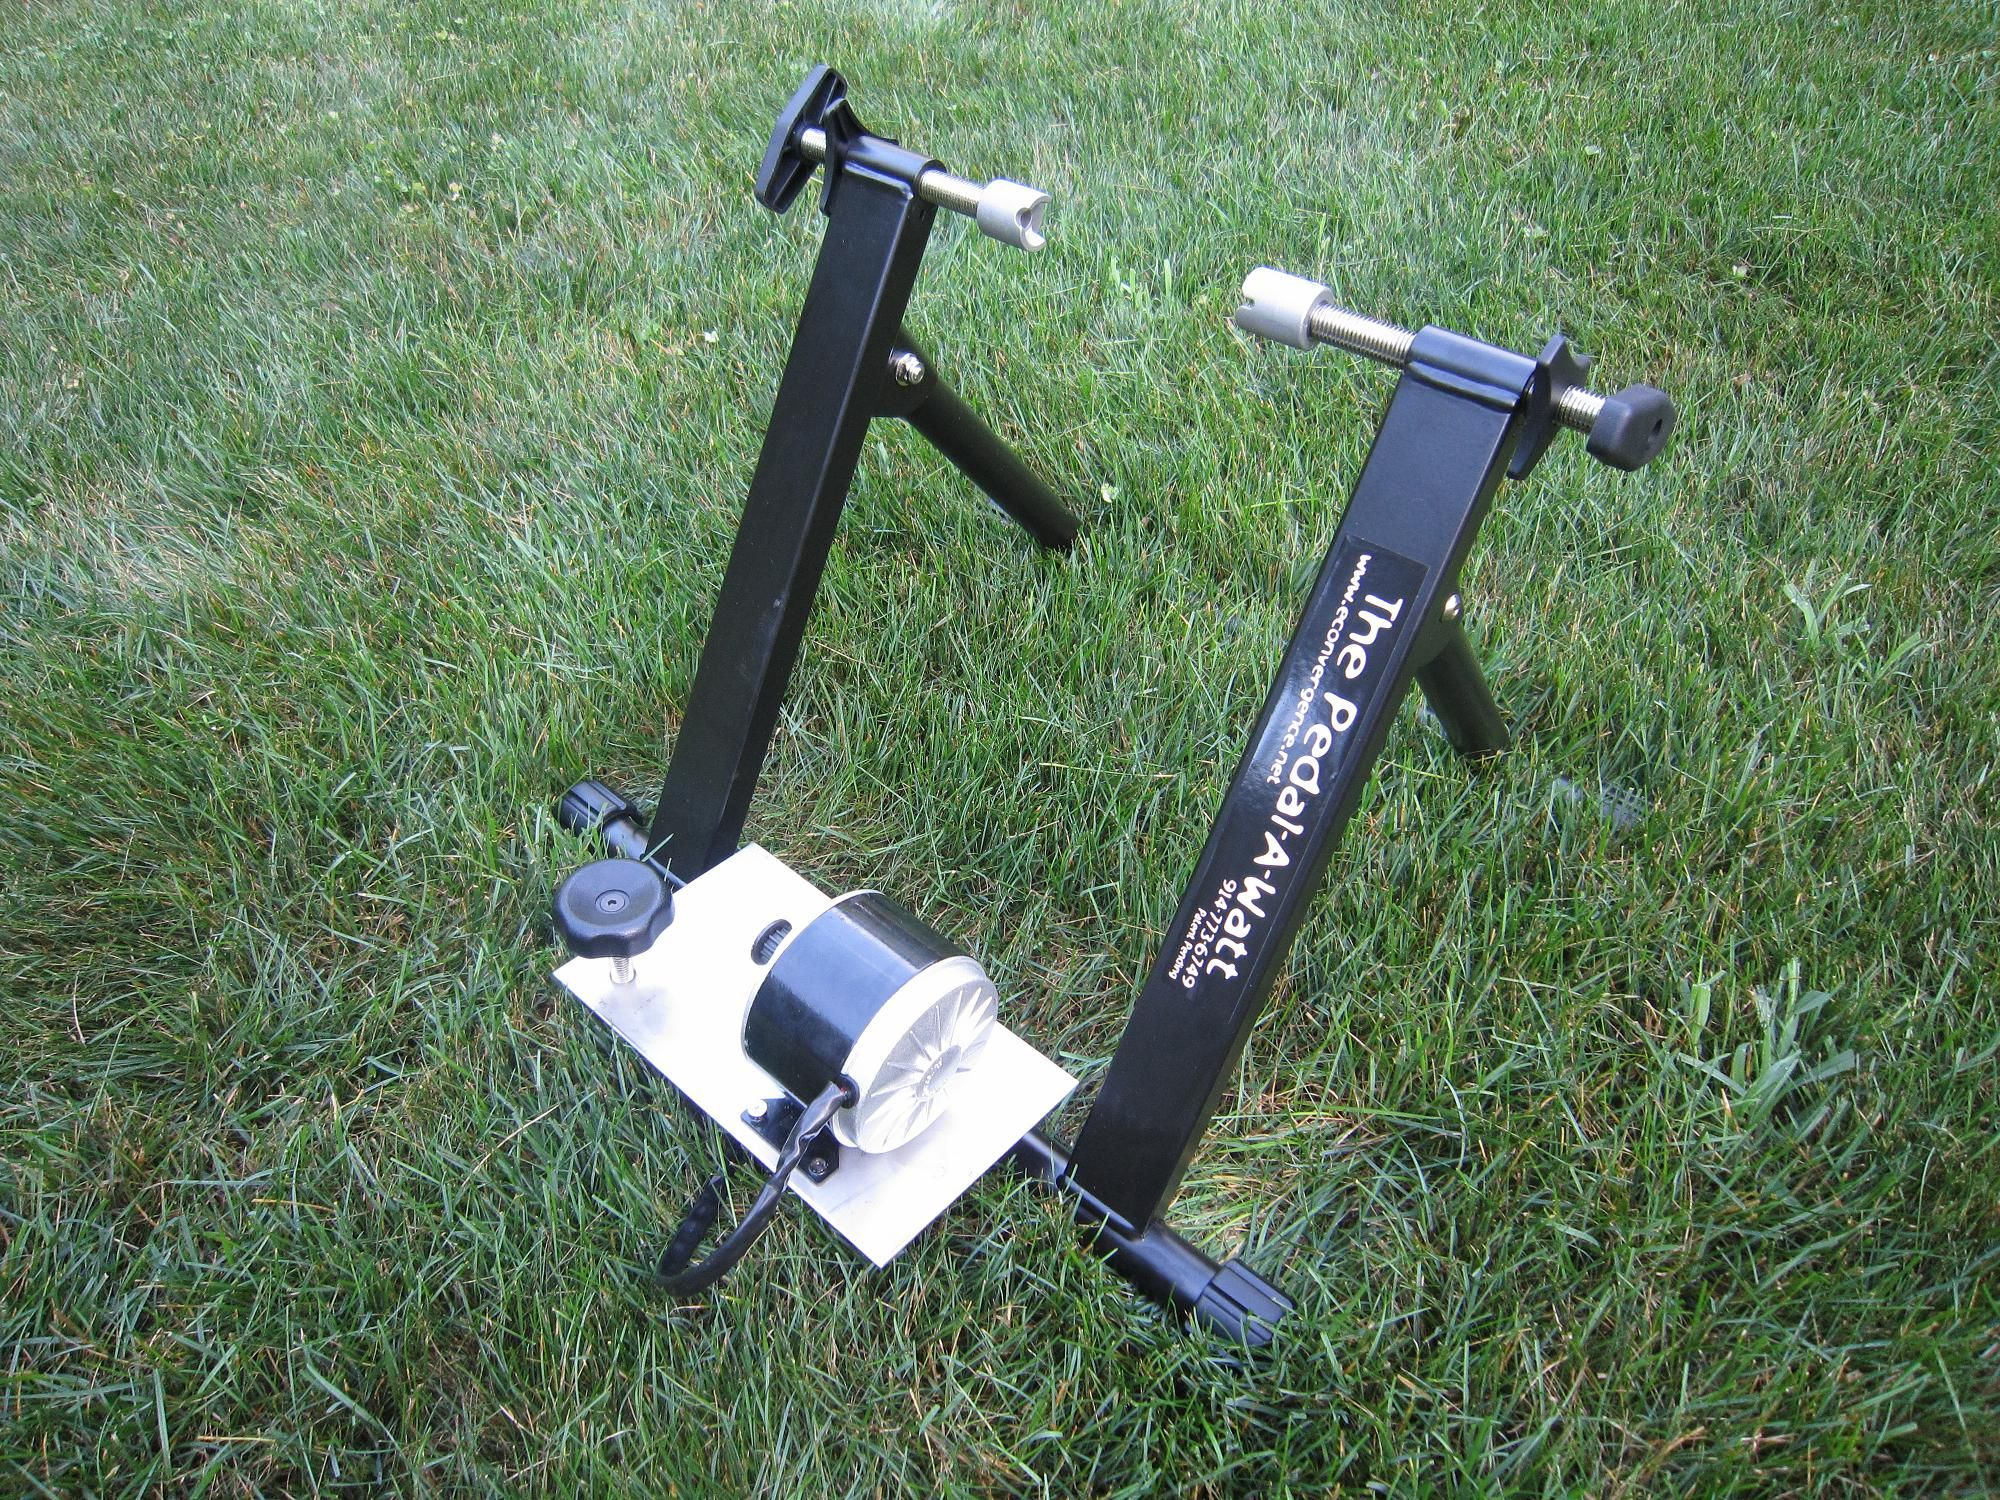 The Pedal A Watt Stationary Bike Power Generator 339 00 Exercise On Your Bicycle To Power Your Laptop Computer While Yo Power Generator Solar Power Diy Power